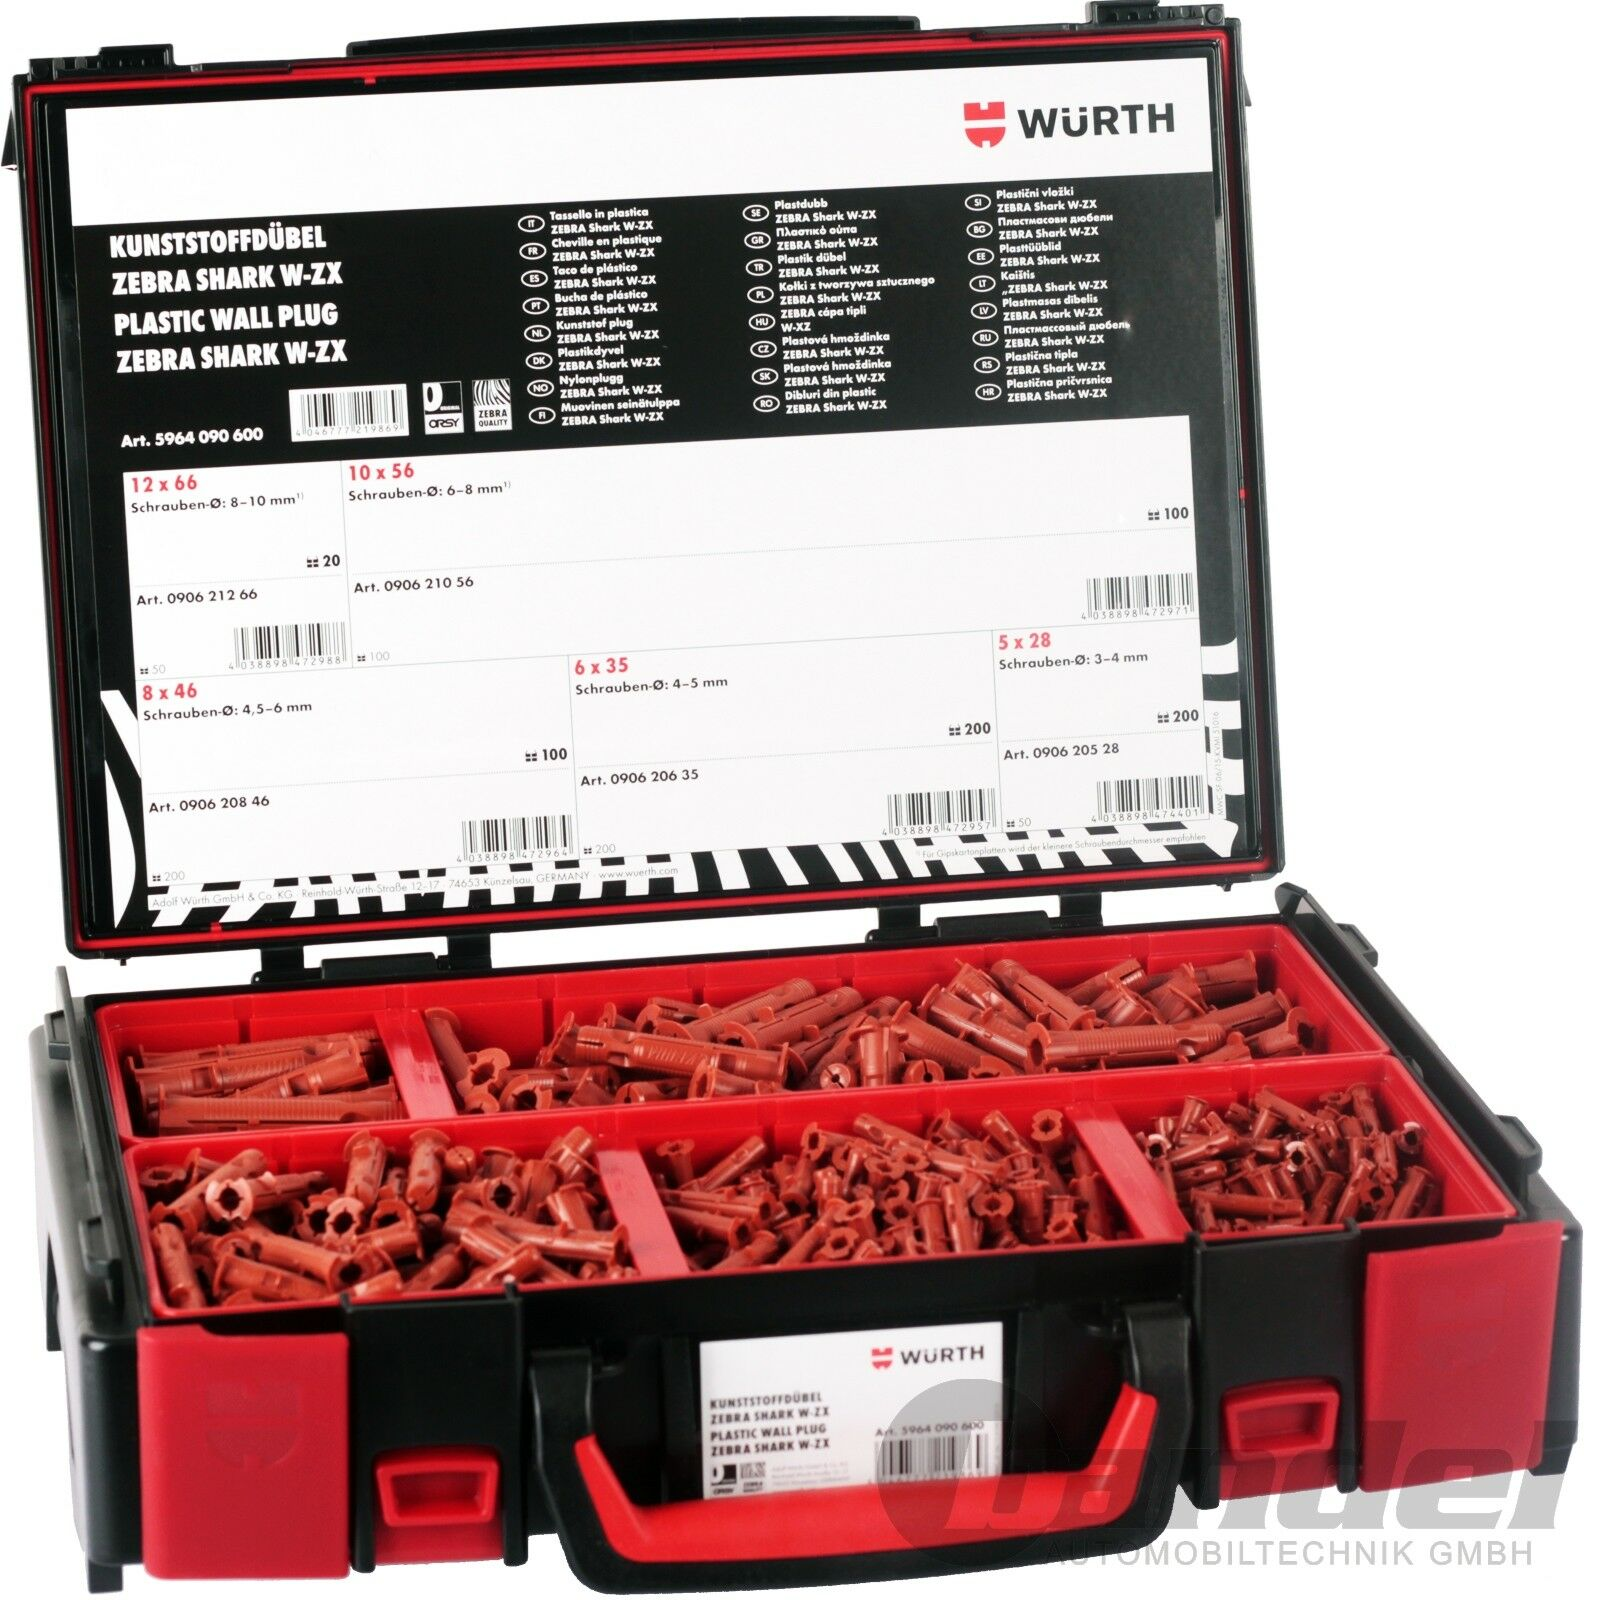 WÜRTH ORSY ZEBRA 620 tlg. WAND-DÜBEL SORTIMENT KOFFER 5, 6, 8, 10,12mm NYLON